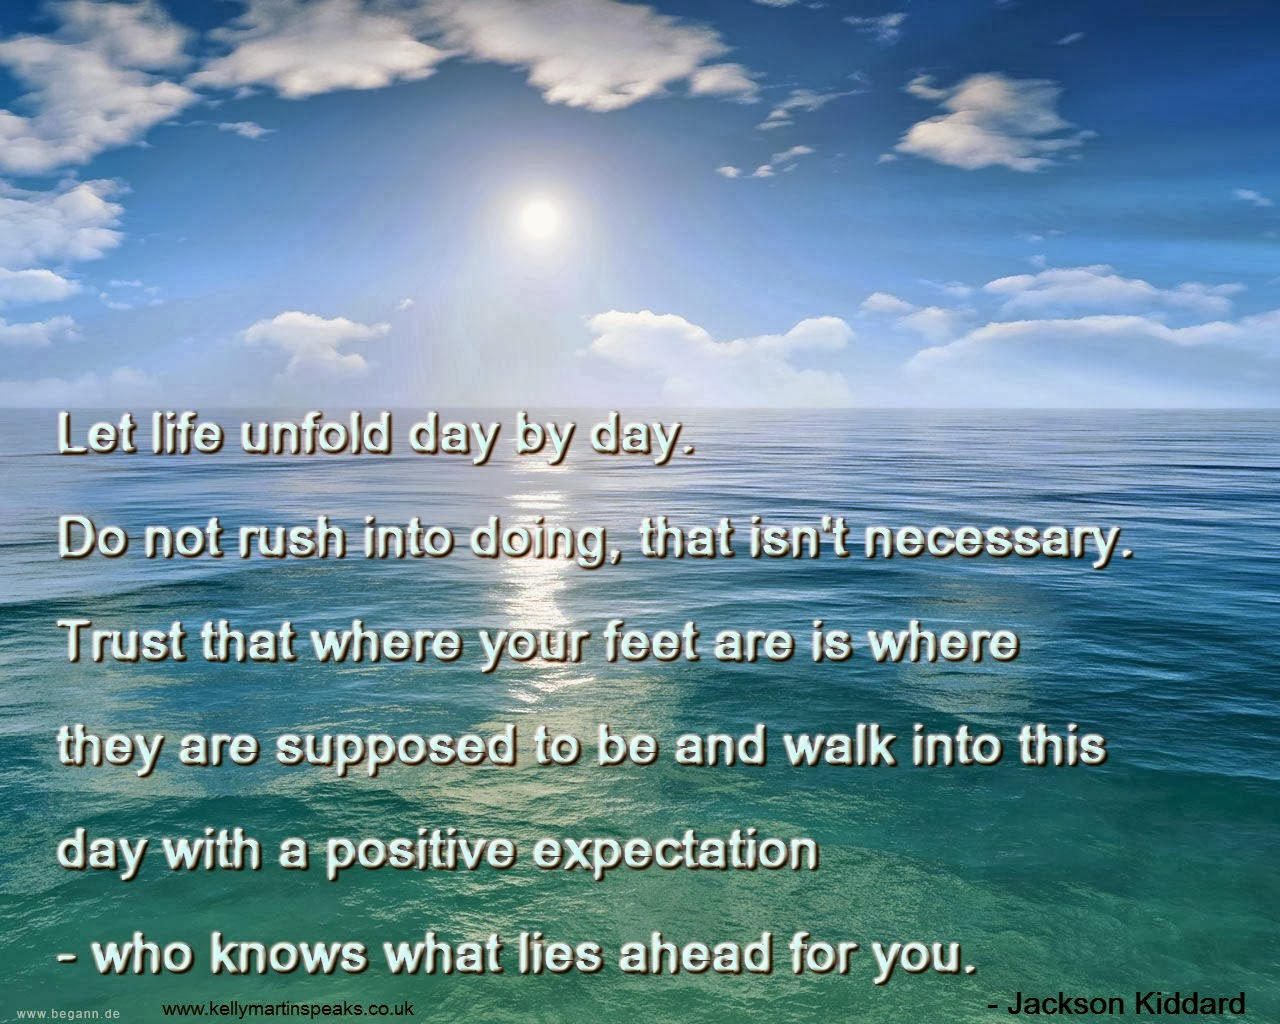 Jackson Kiddard quote on positive expectations